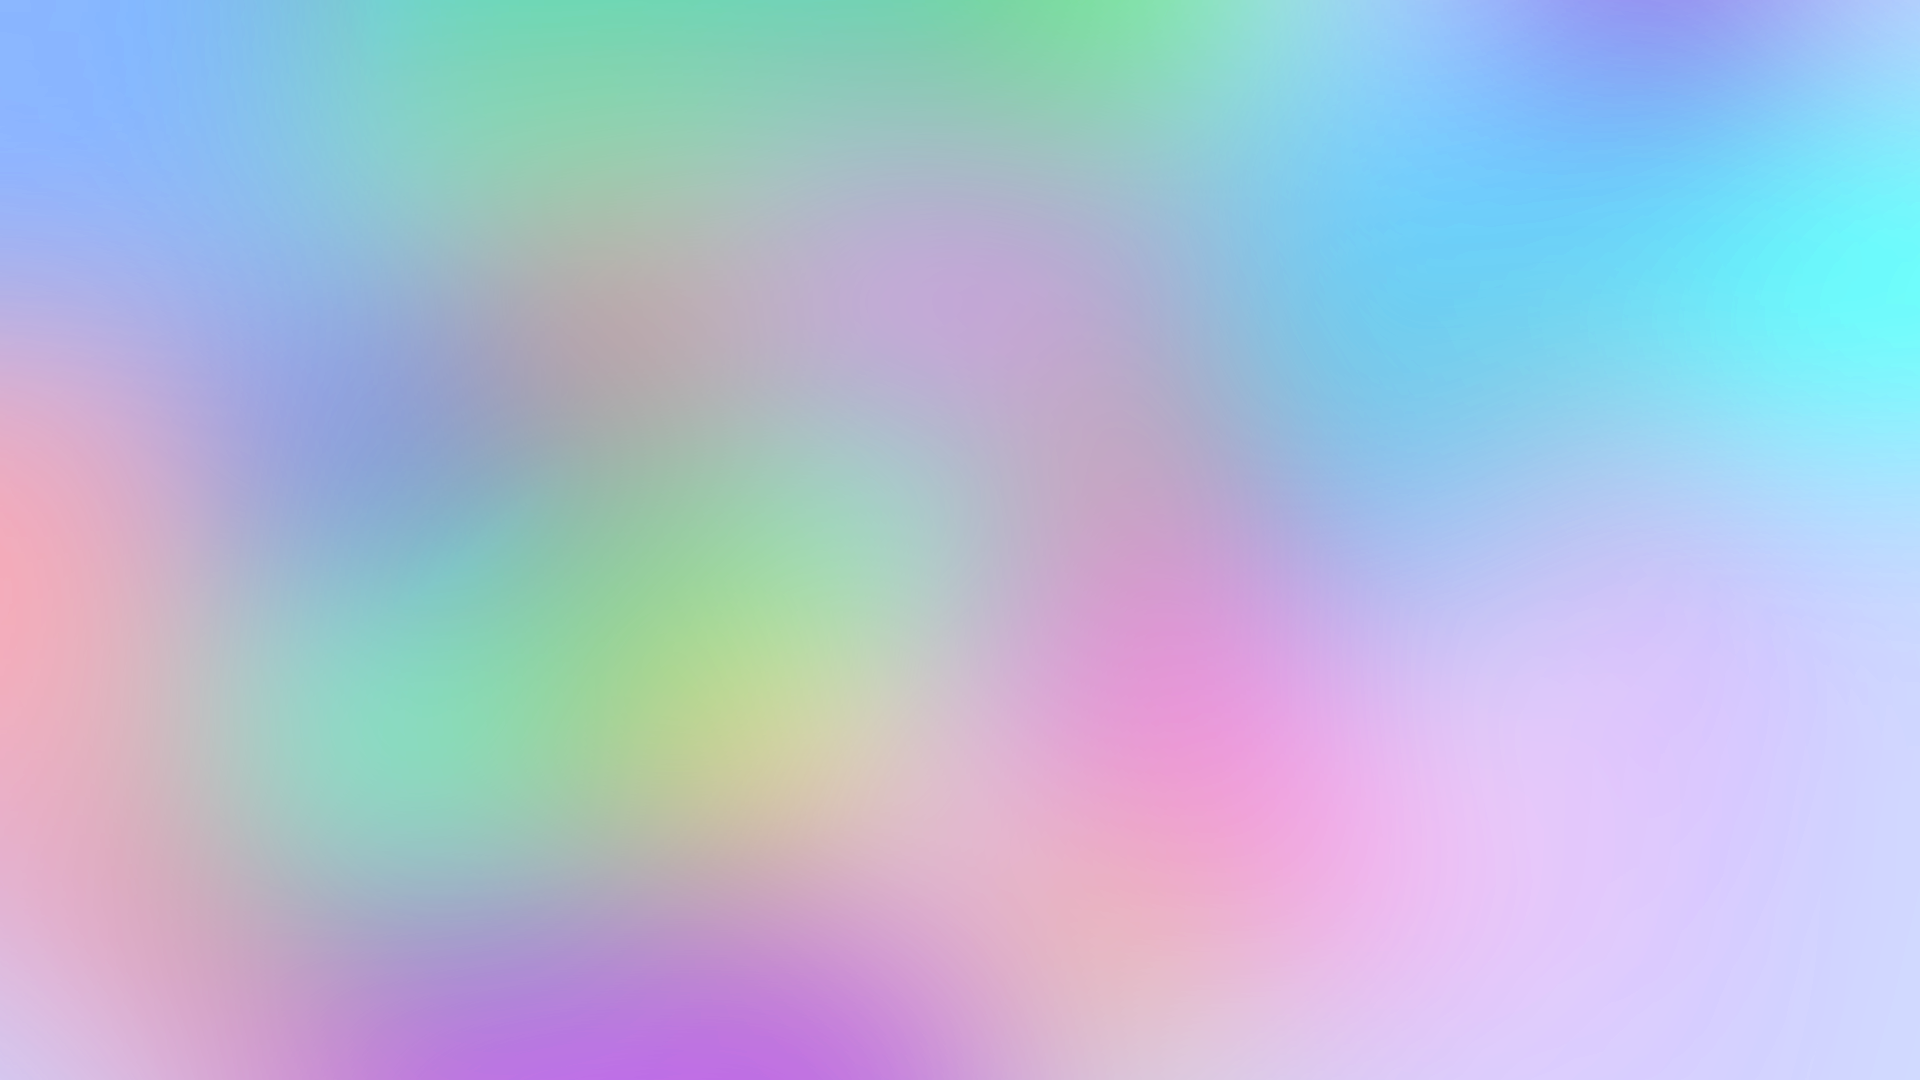 Pastel Backgrounds Tumblr   Viewing Gallery 1920x1080